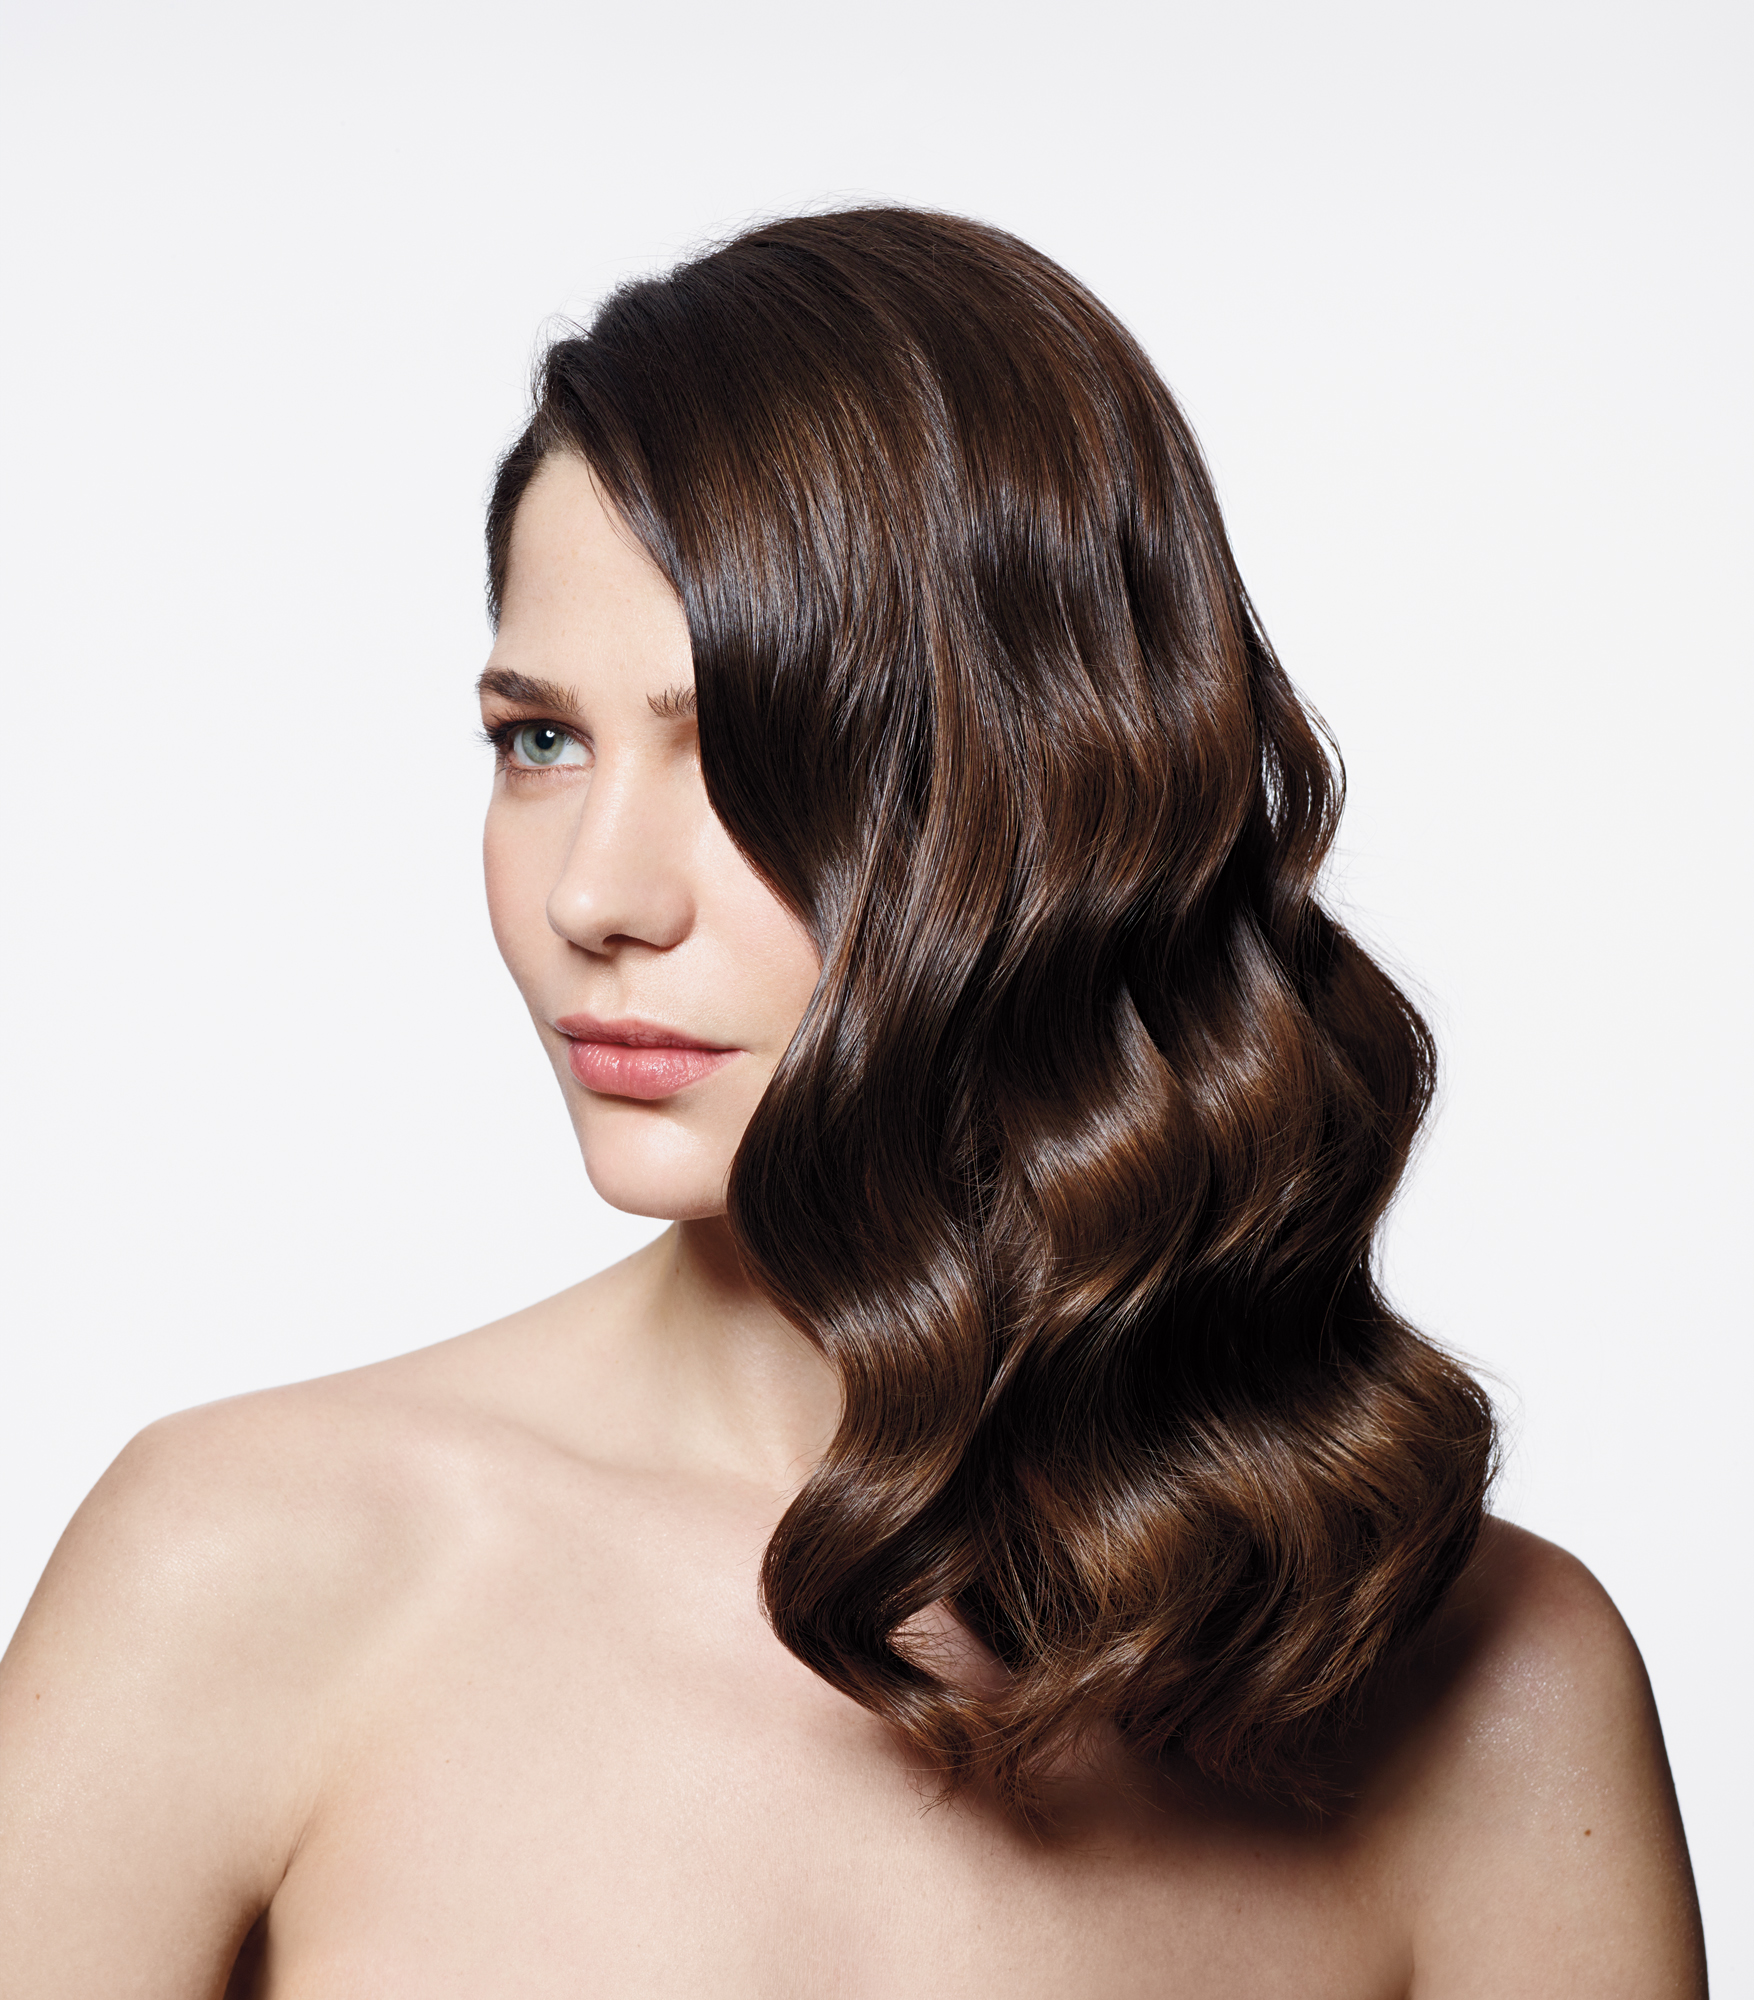 Model with wavy brown hair